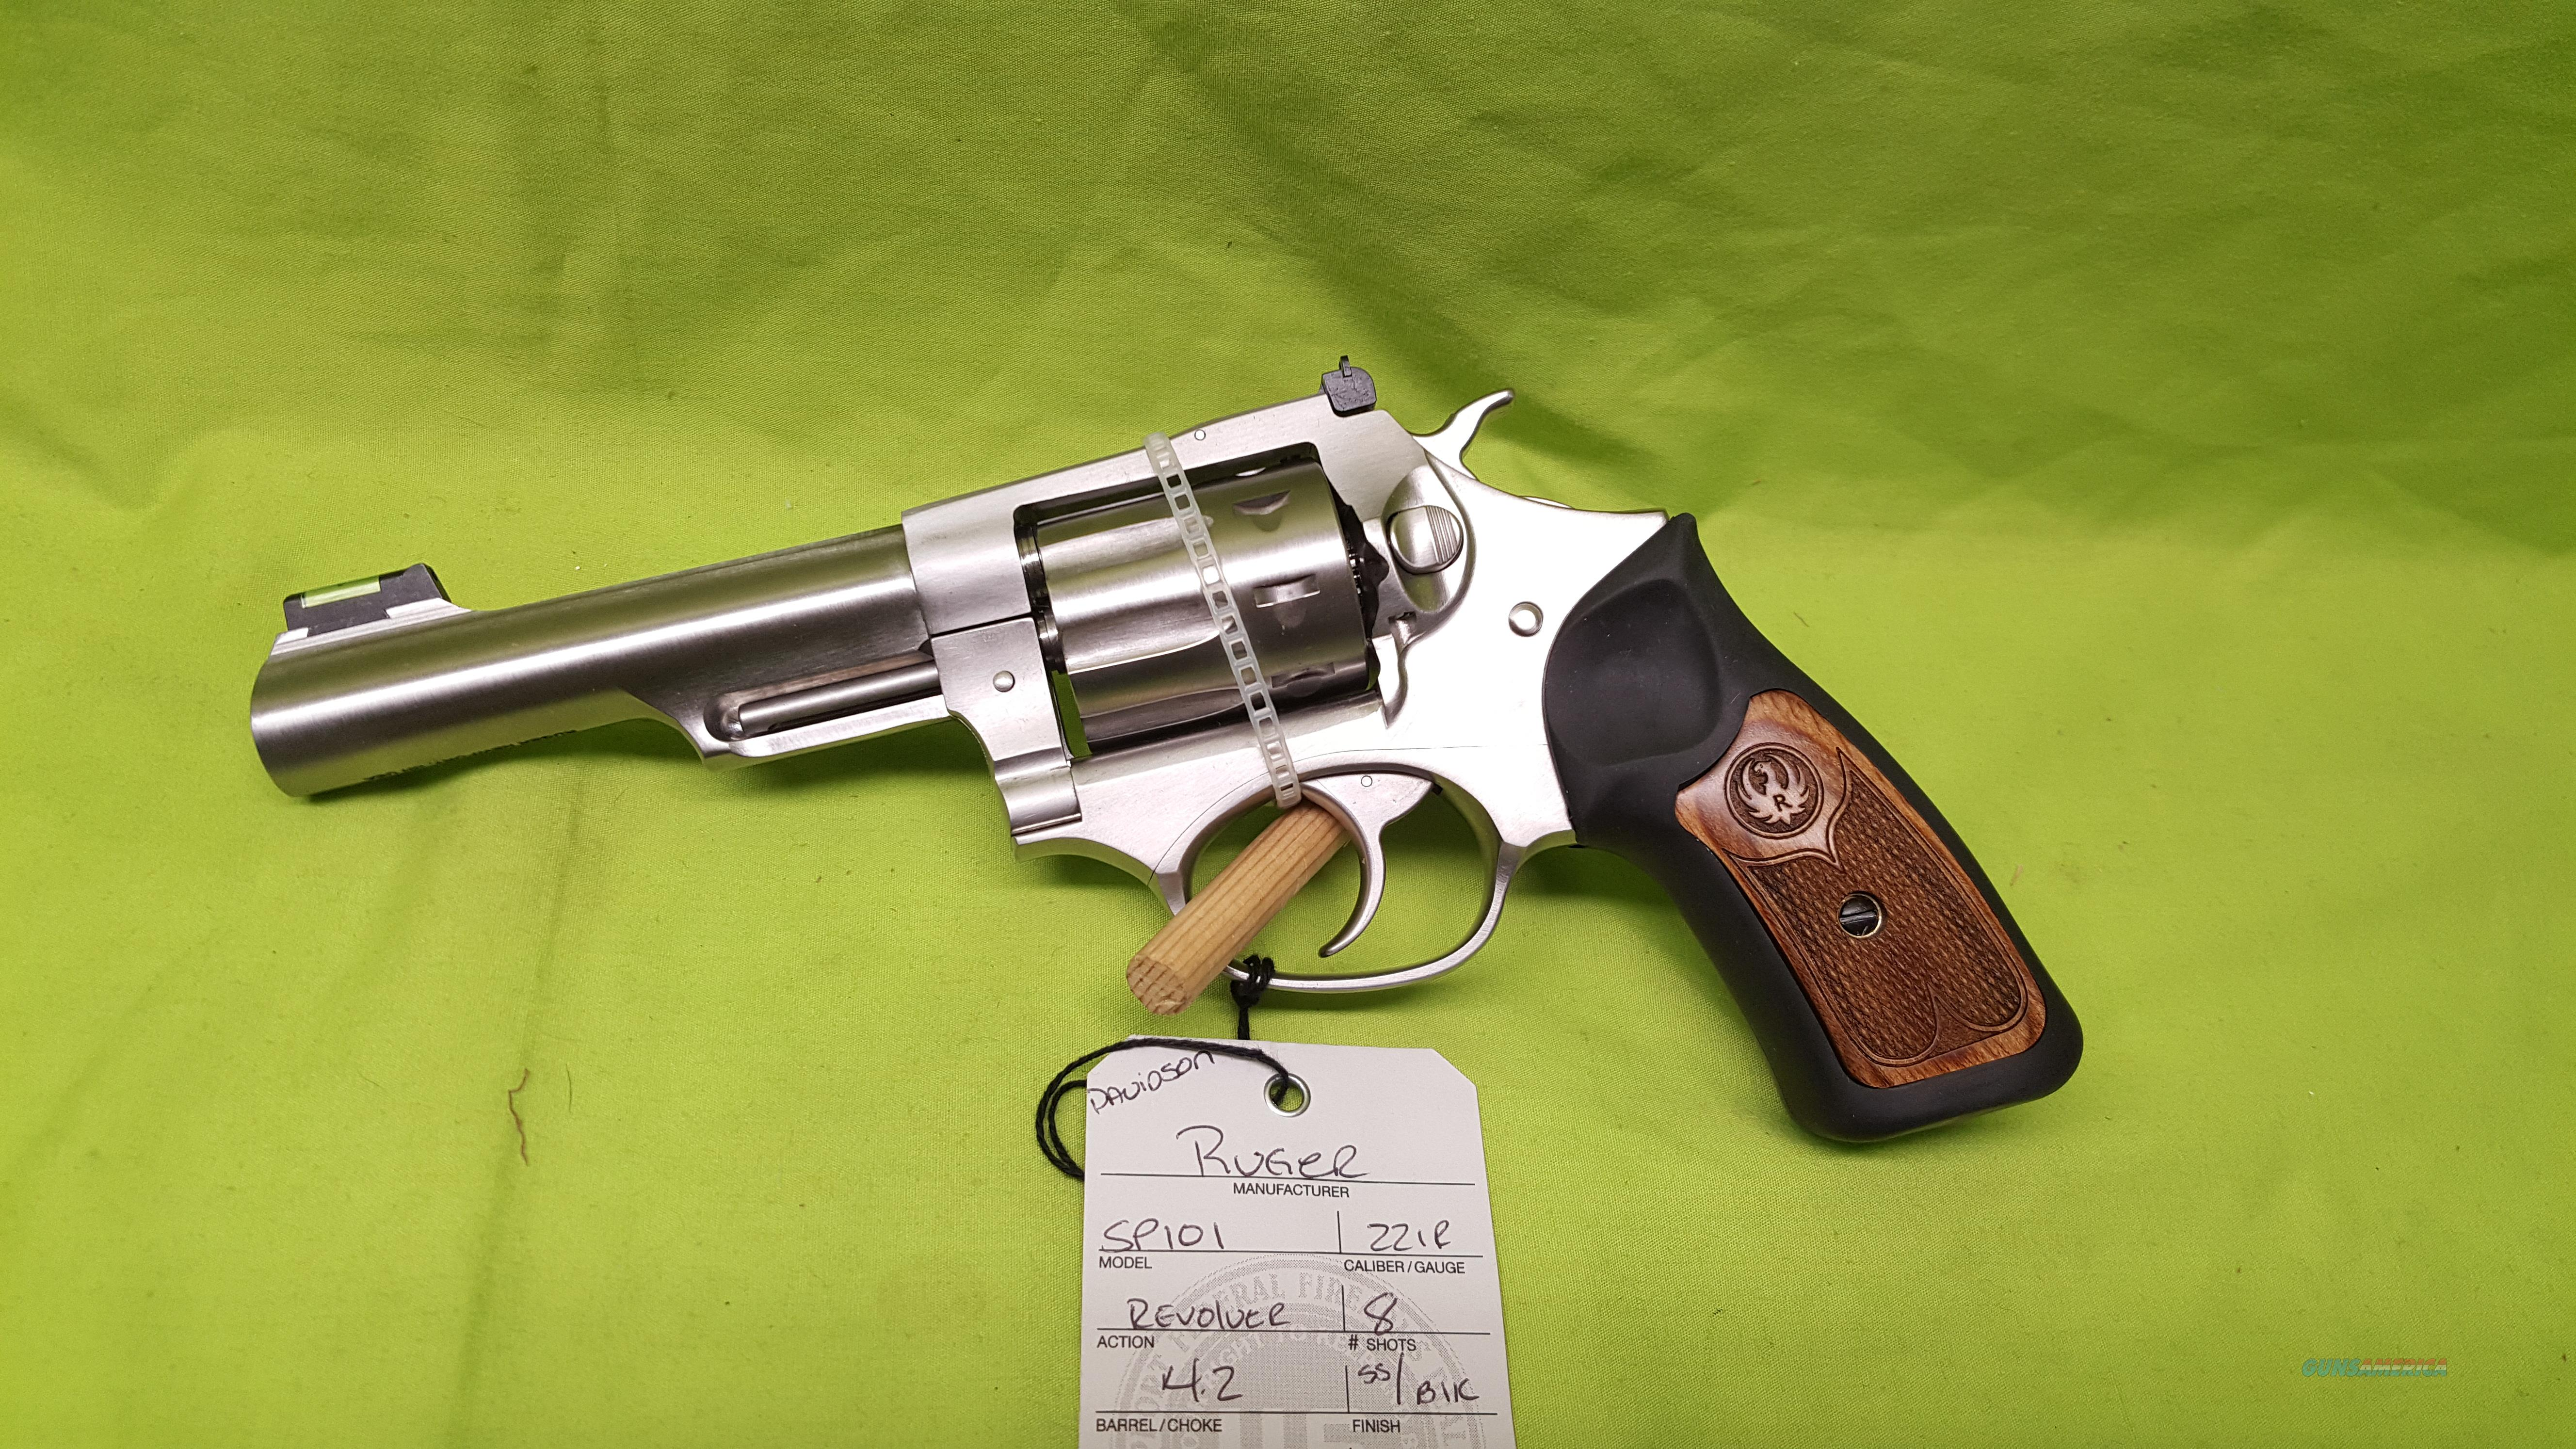 RUGER SP101 SP 101 22 LR REVOLVER 4.2 STAINLESS  Guns > Pistols > Ruger Double Action Revolver > SP101 Type